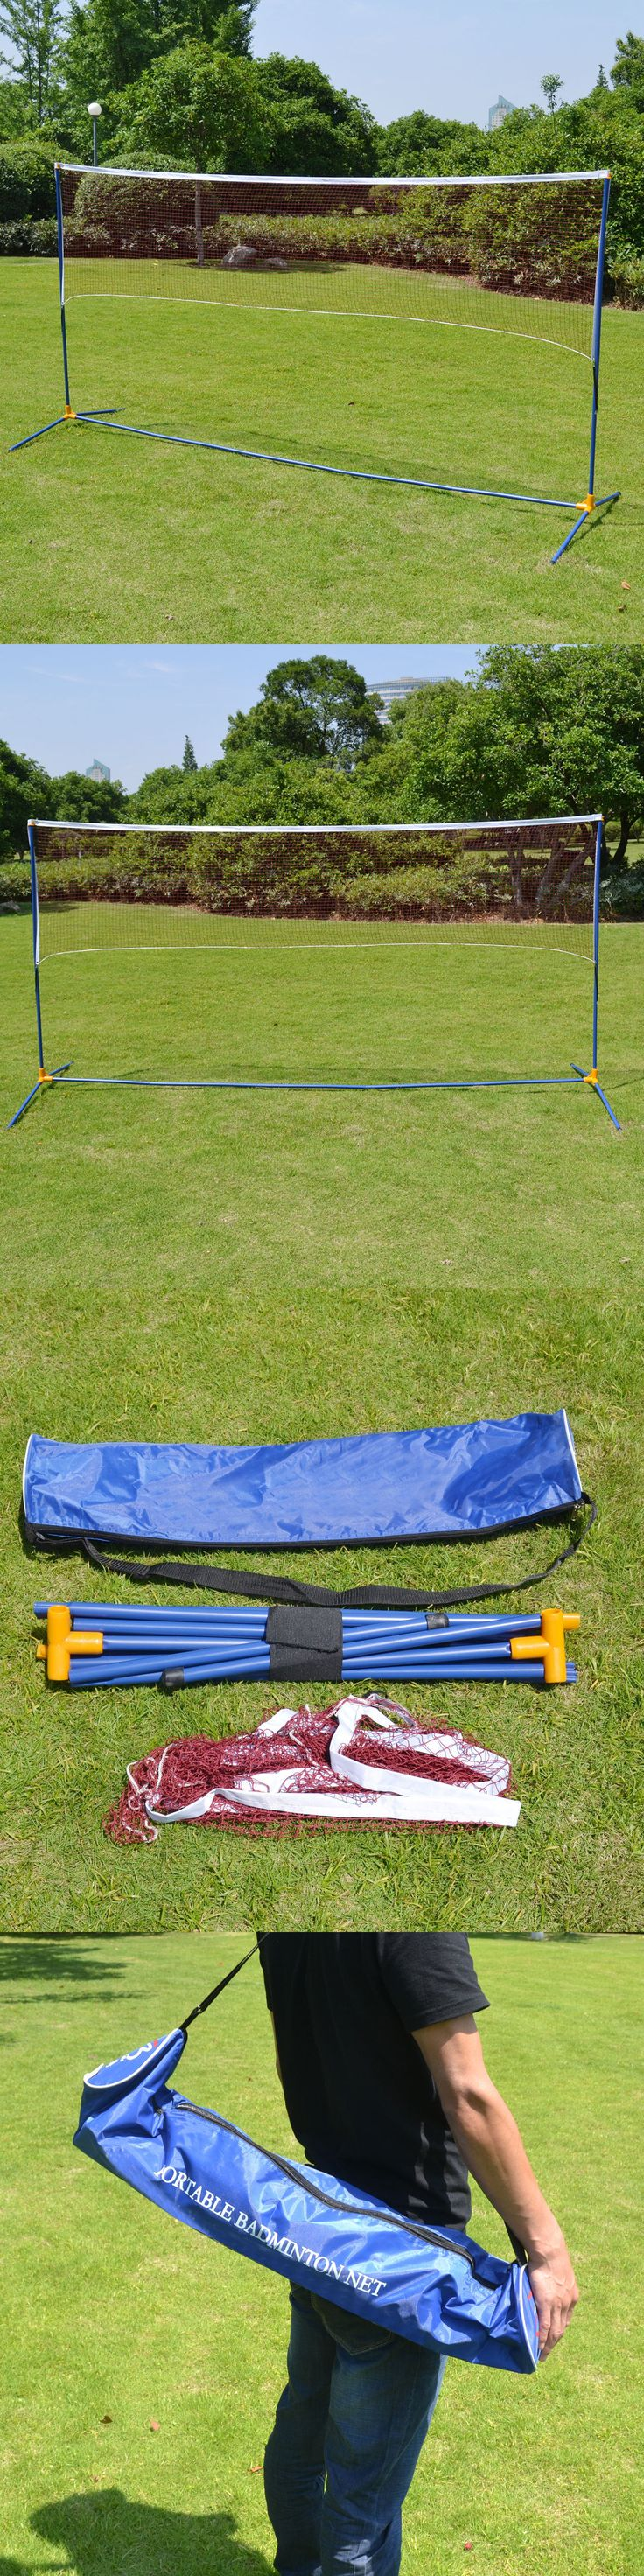 Badminton 106460: Portable Training Beach Volleyball Badminton Tennis Net With Carrying Bag BUY IT NOW ONLY: $45.0